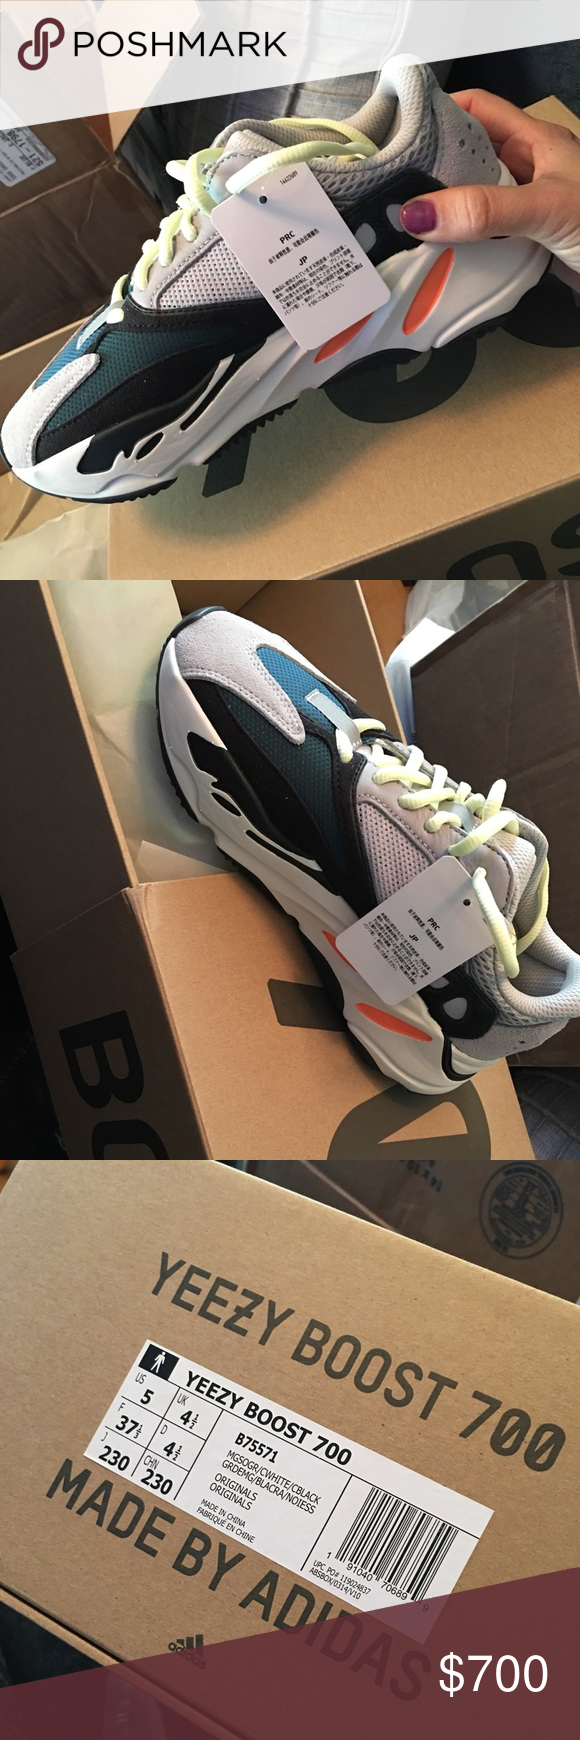 the latest 5a262 6d140 Authentic Yeezy Boost 700 Wave Runner Authentic Yeezy Boost ...